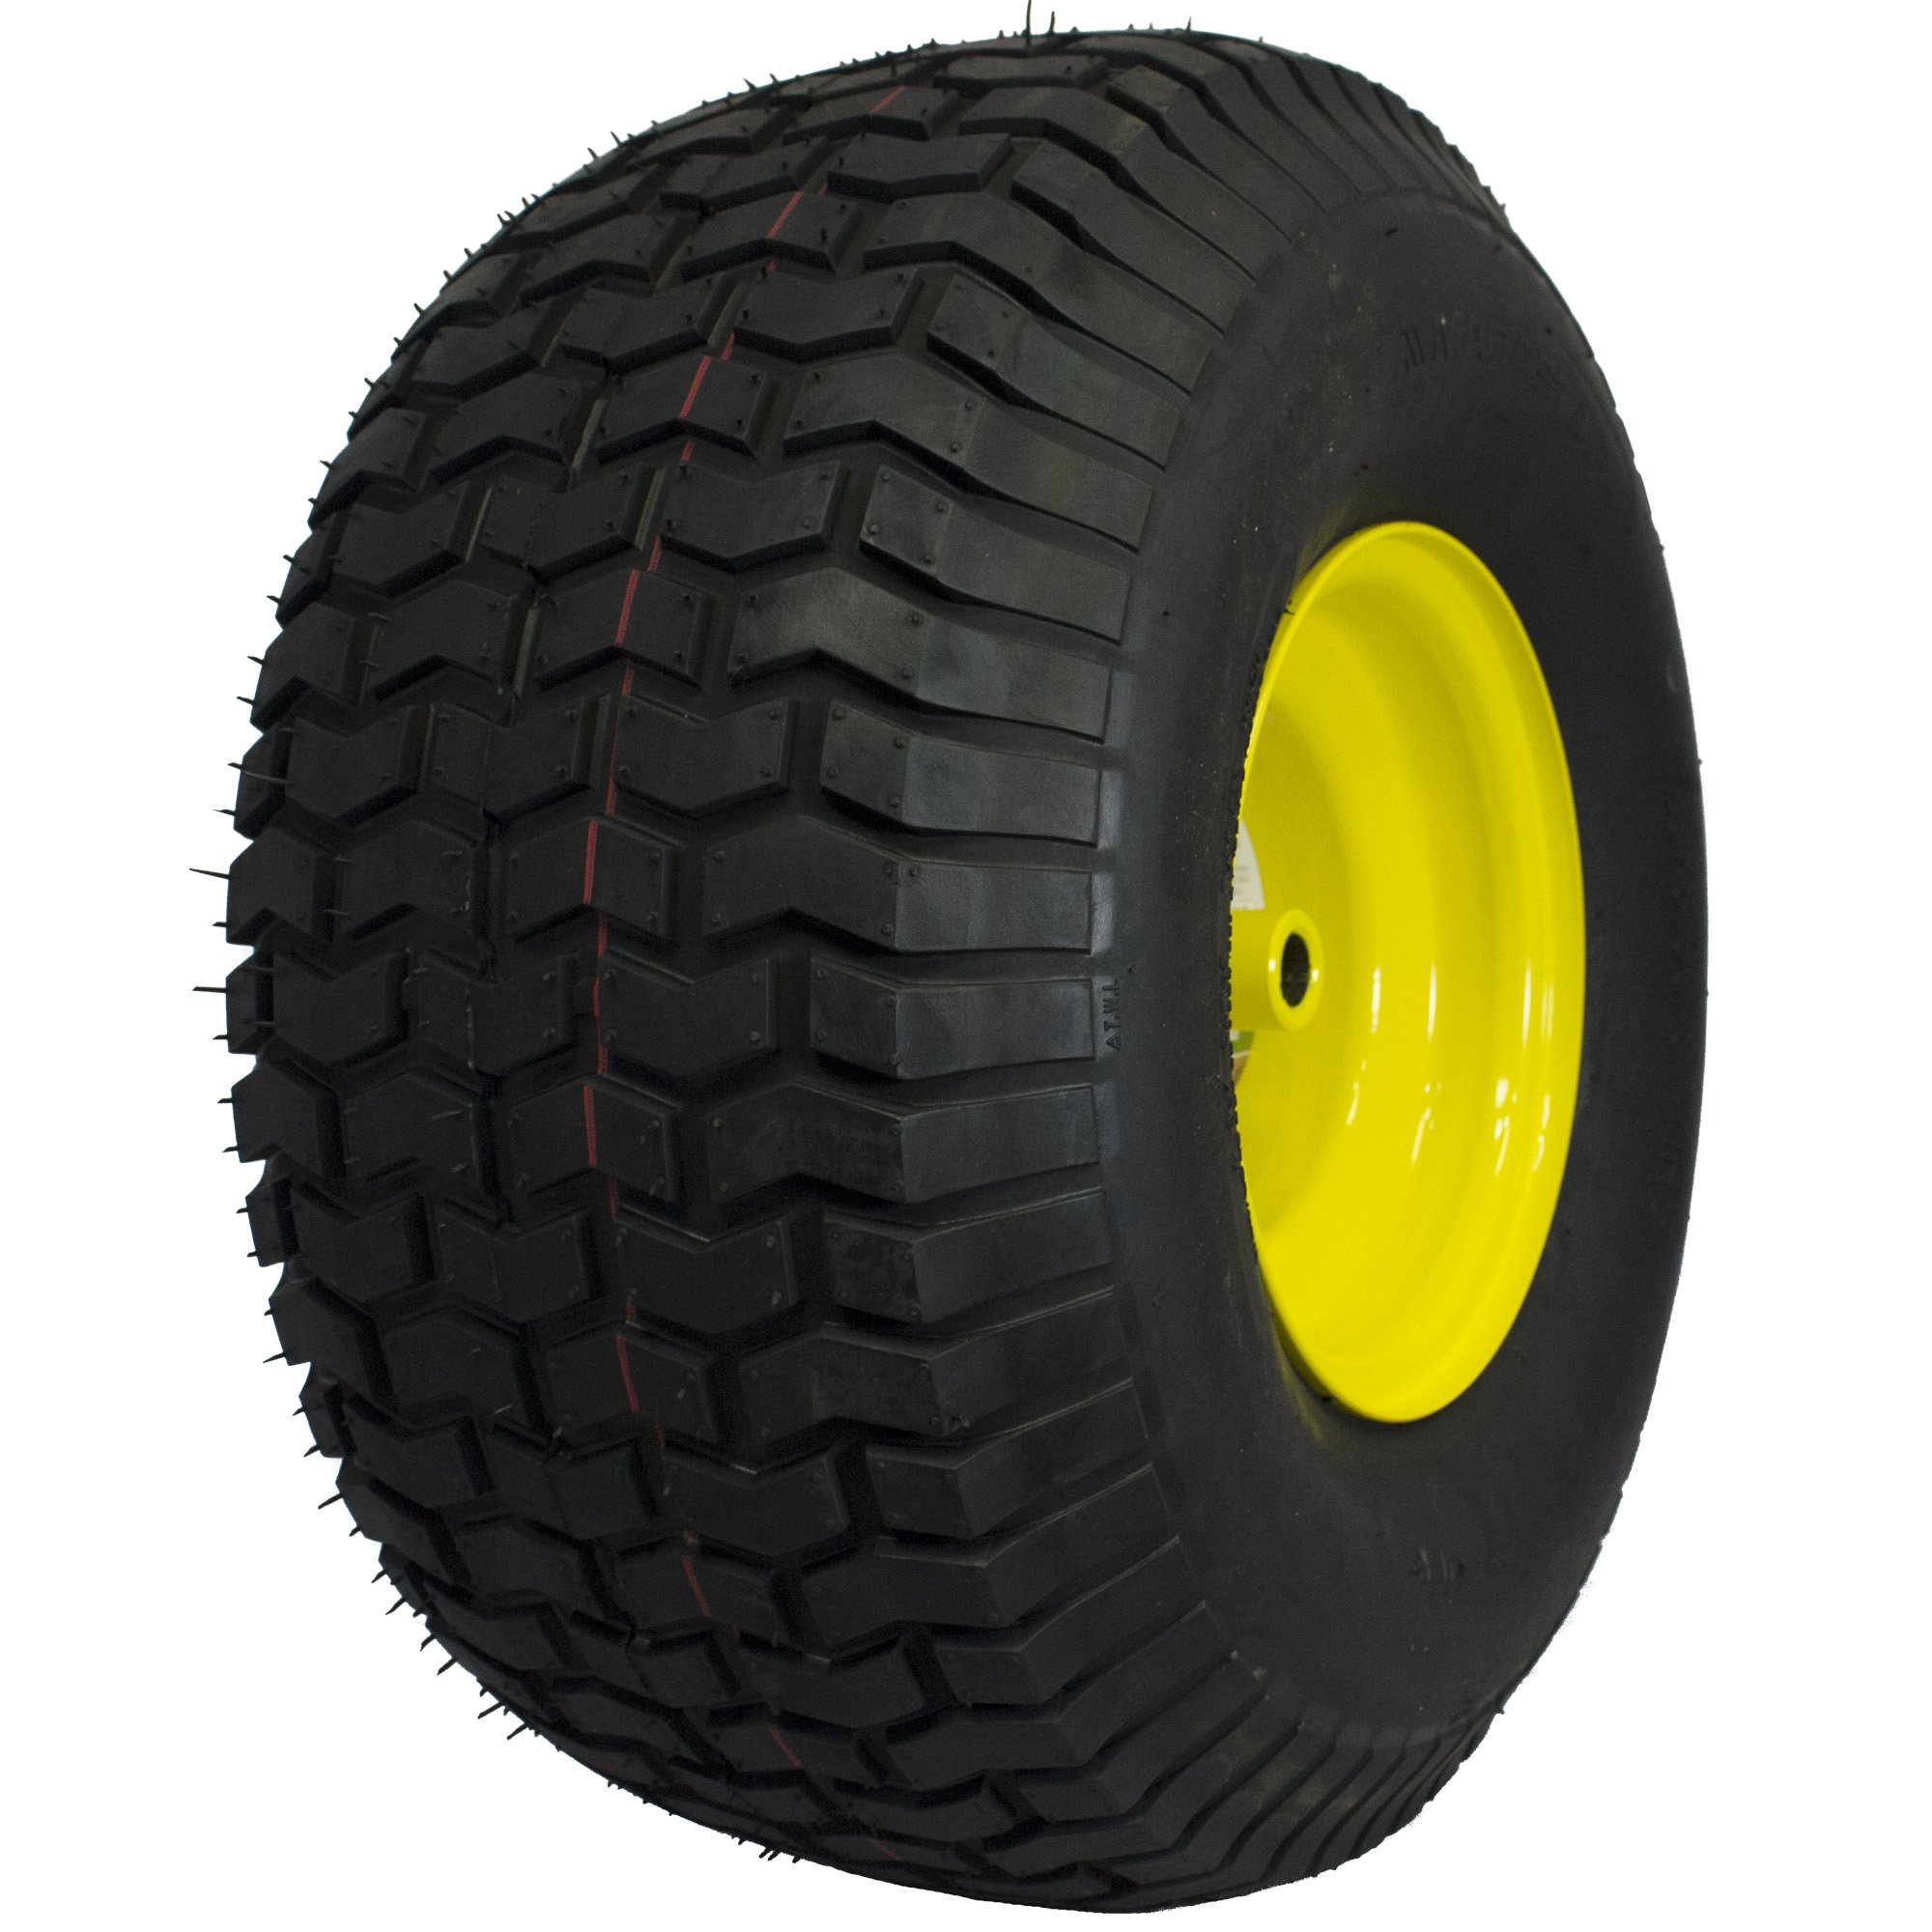 MARASTAR 21424 20X8.00-8 Rear Tire Assembly Replacement for John Deere Riding Mowers, Yellow